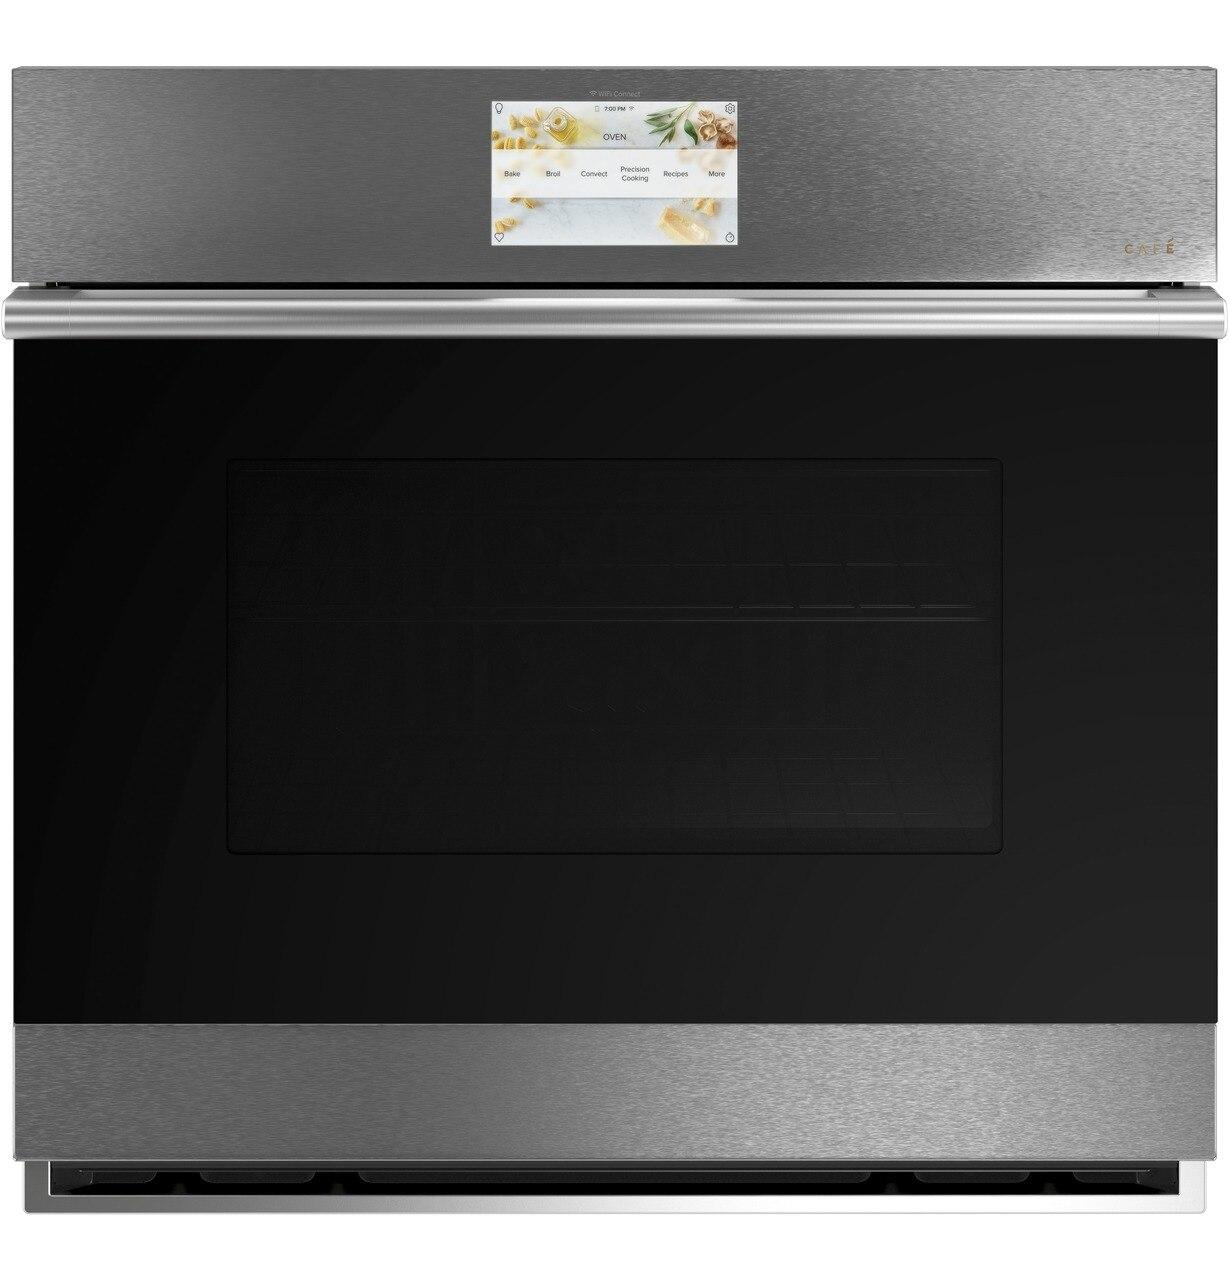 """CafeCafé™ 30"""" Smart Single Wall Oven With Convection In Platinum Glass"""